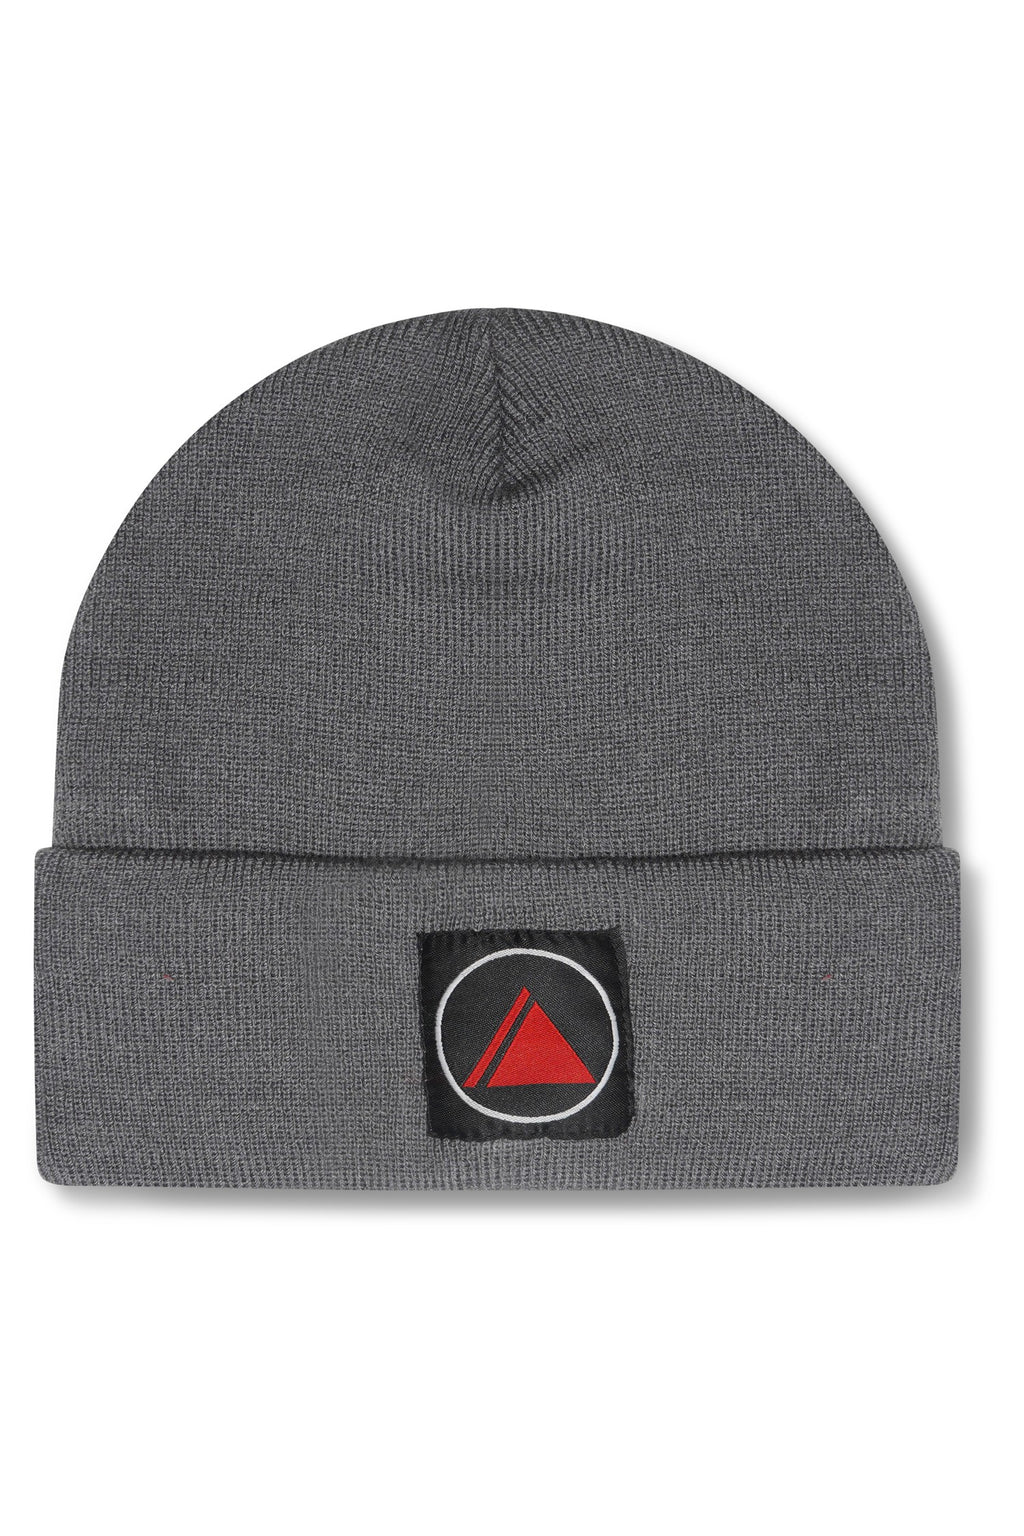 BLACK LABEL AASPIRE HAT (GREY)